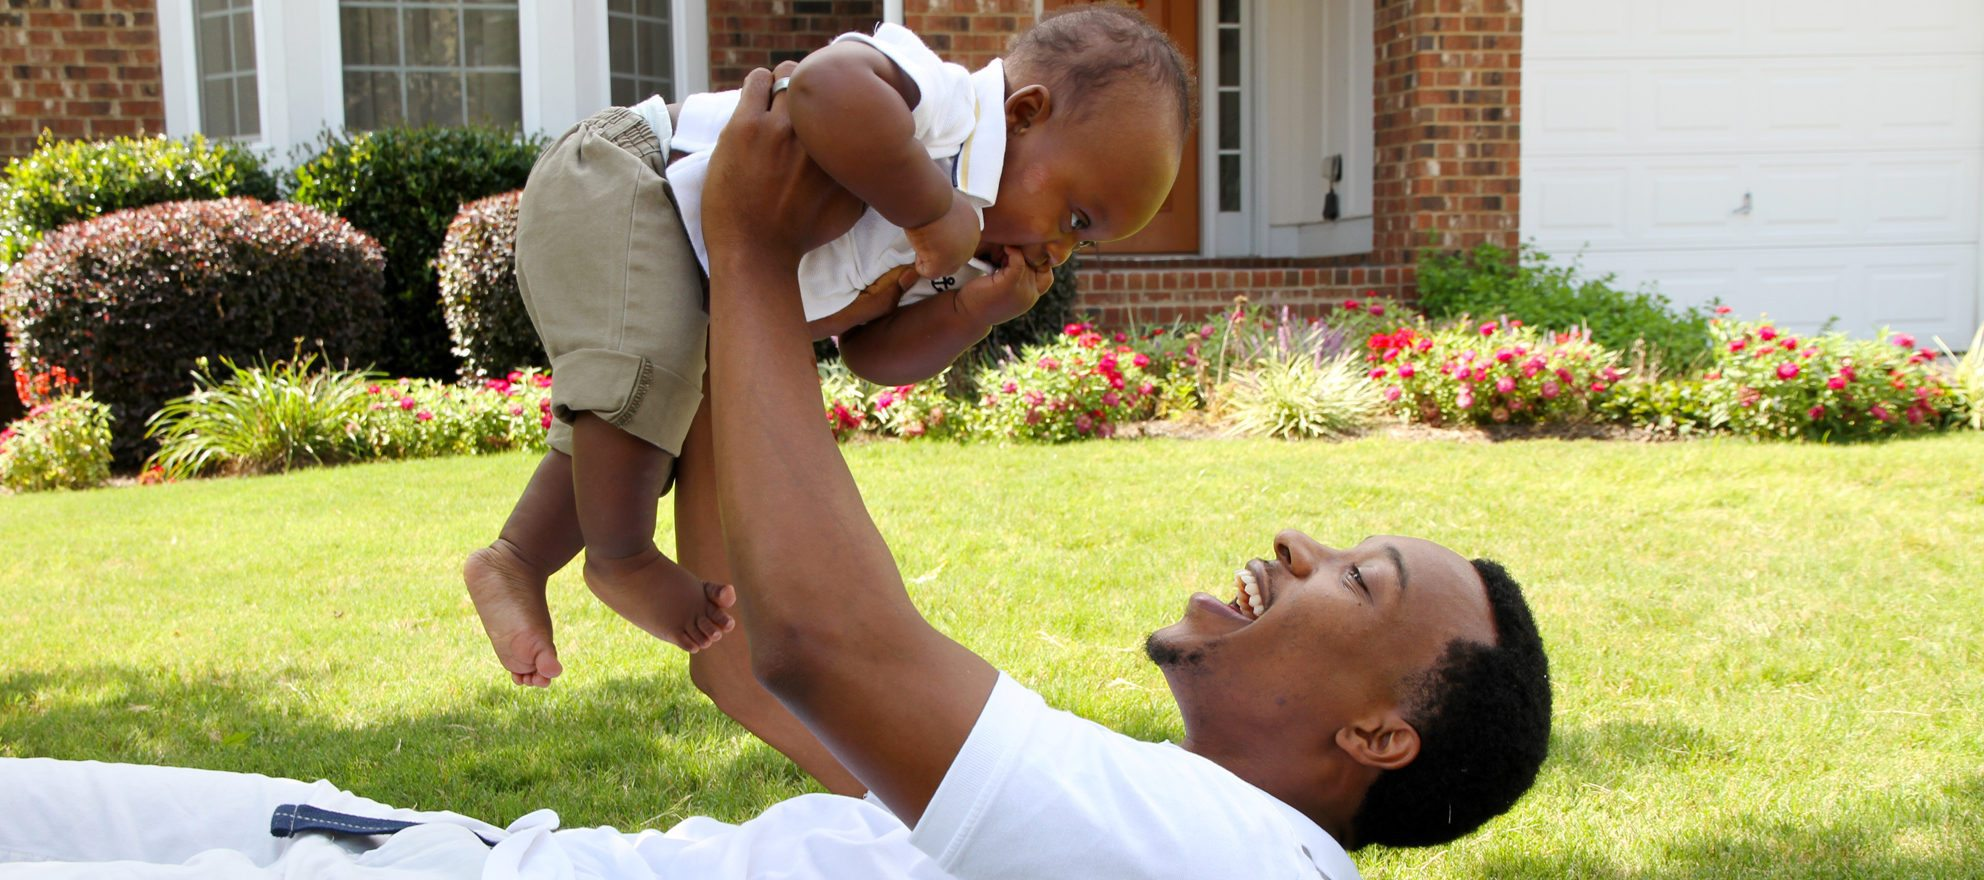 Why the housing boom is good for minority homeownership